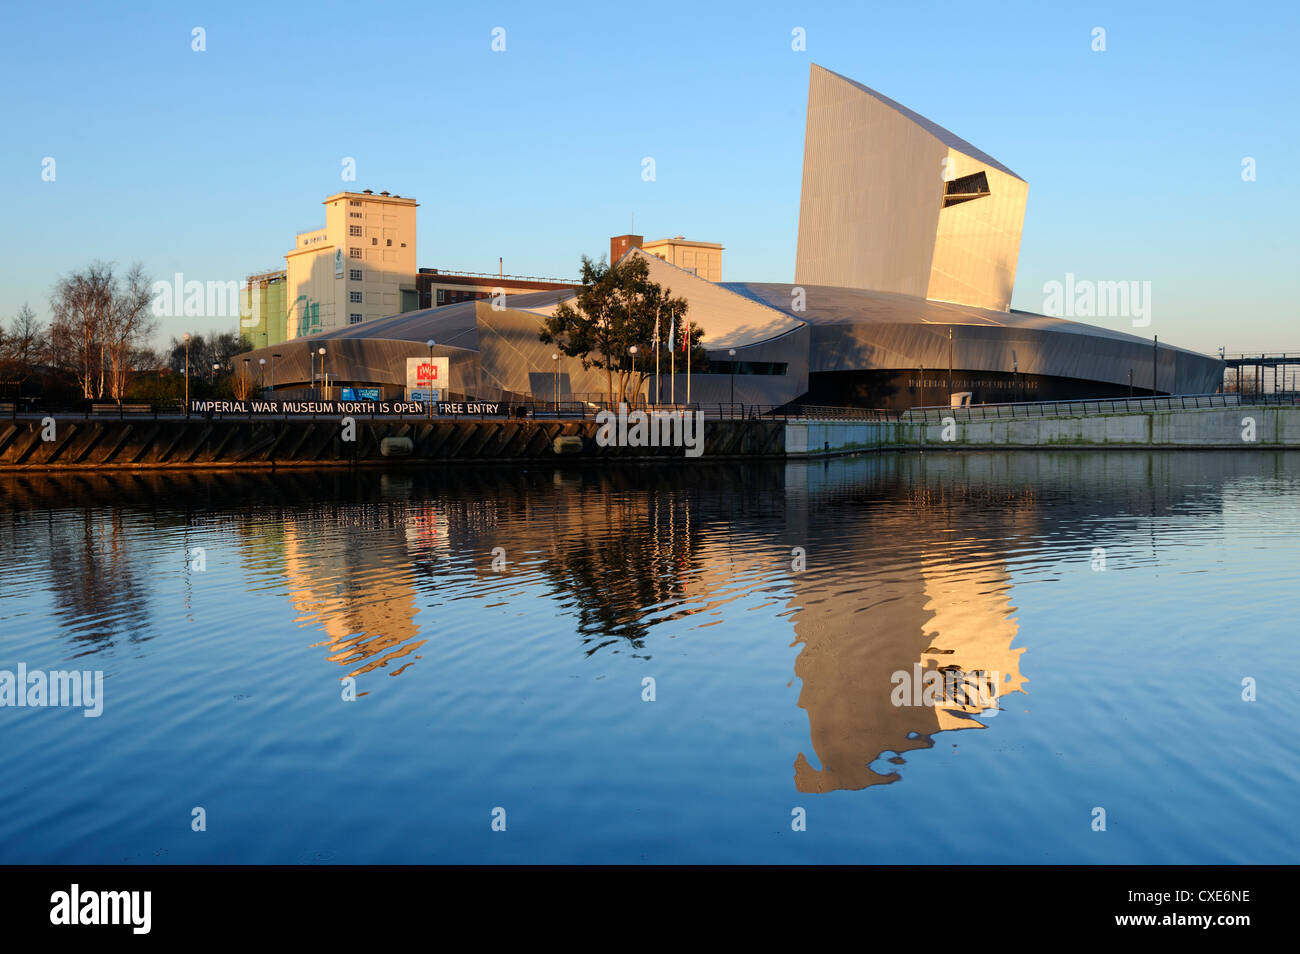 Imperial War Museum North, Salford Quays, Manchester, Greater Manchester, England, United Kingdom, Europe - Stock Image